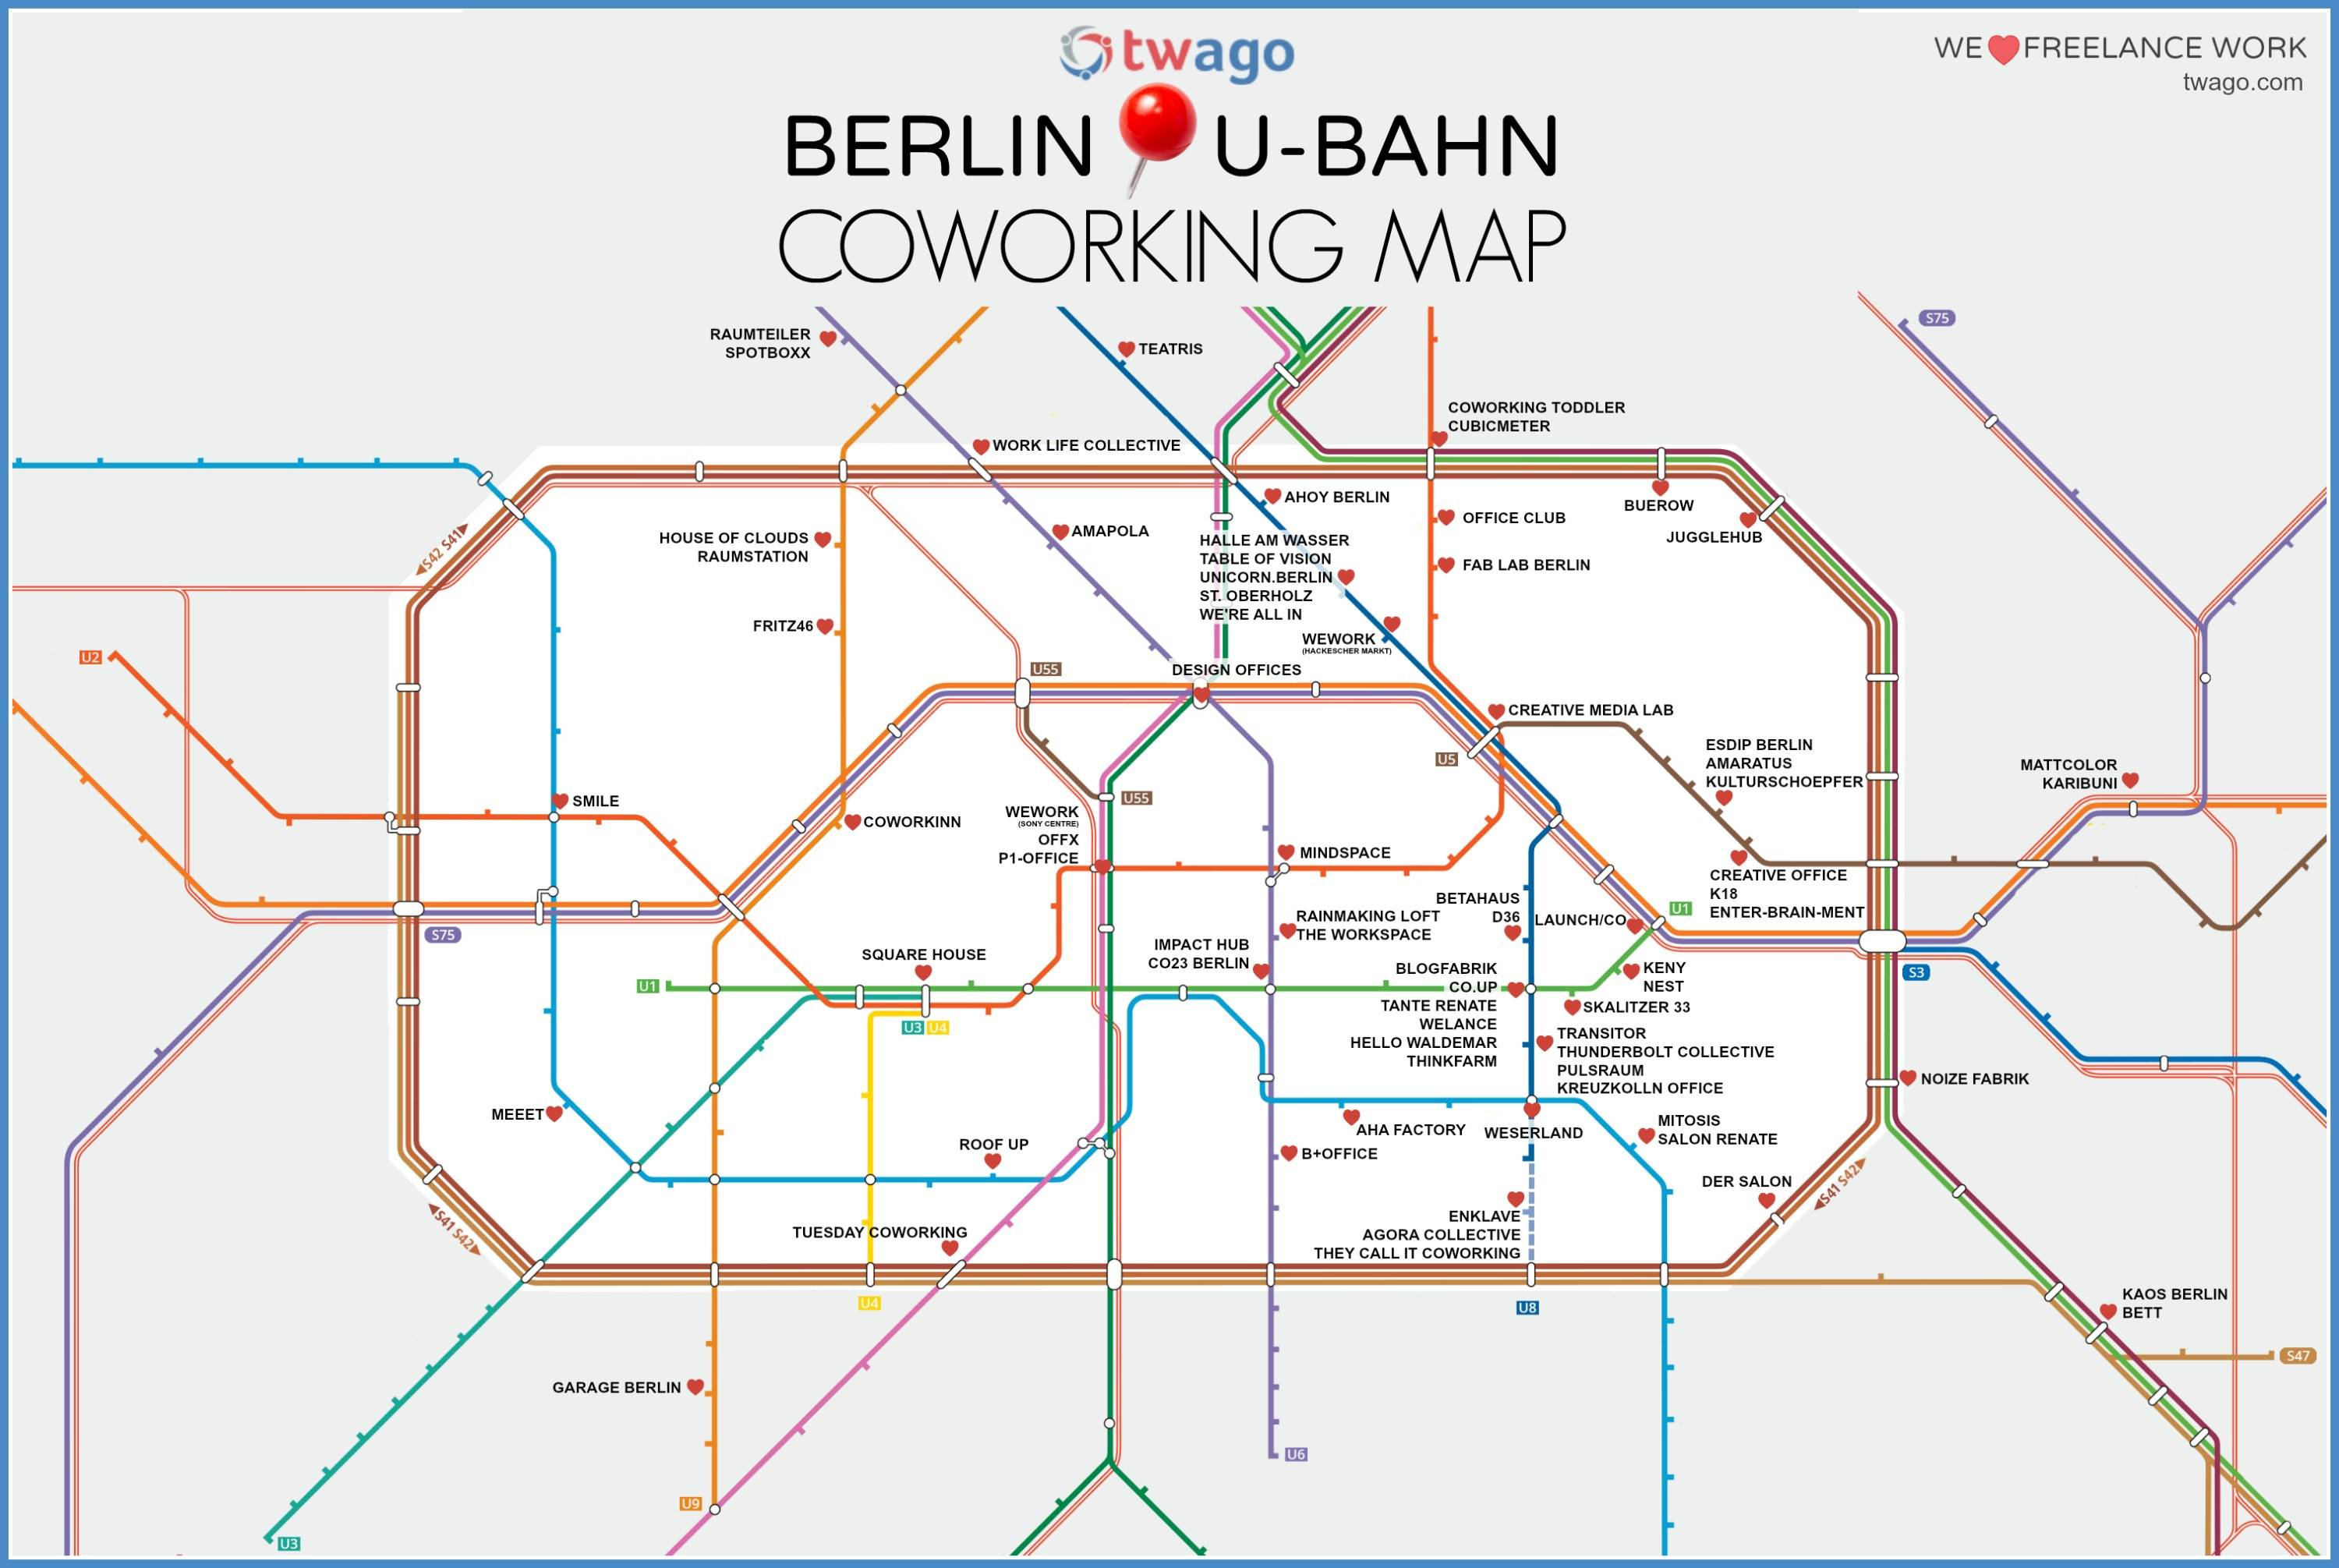 Berlin Coworking UBahn Map Twago Blog - Berlin us bahn map